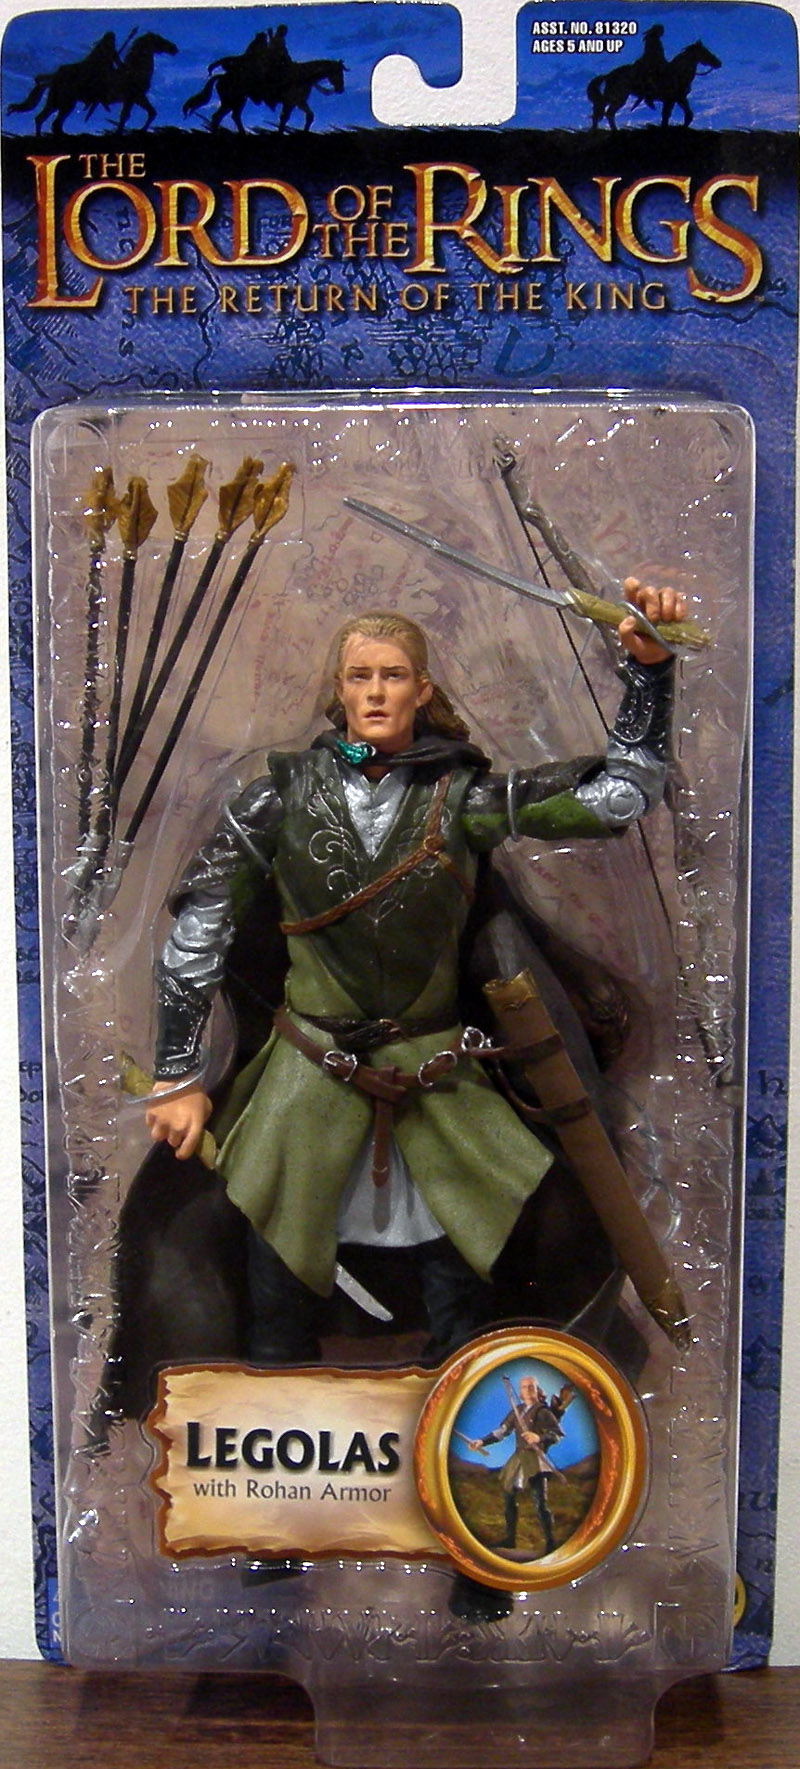 Legolas with Rohan armor (Trilogy)